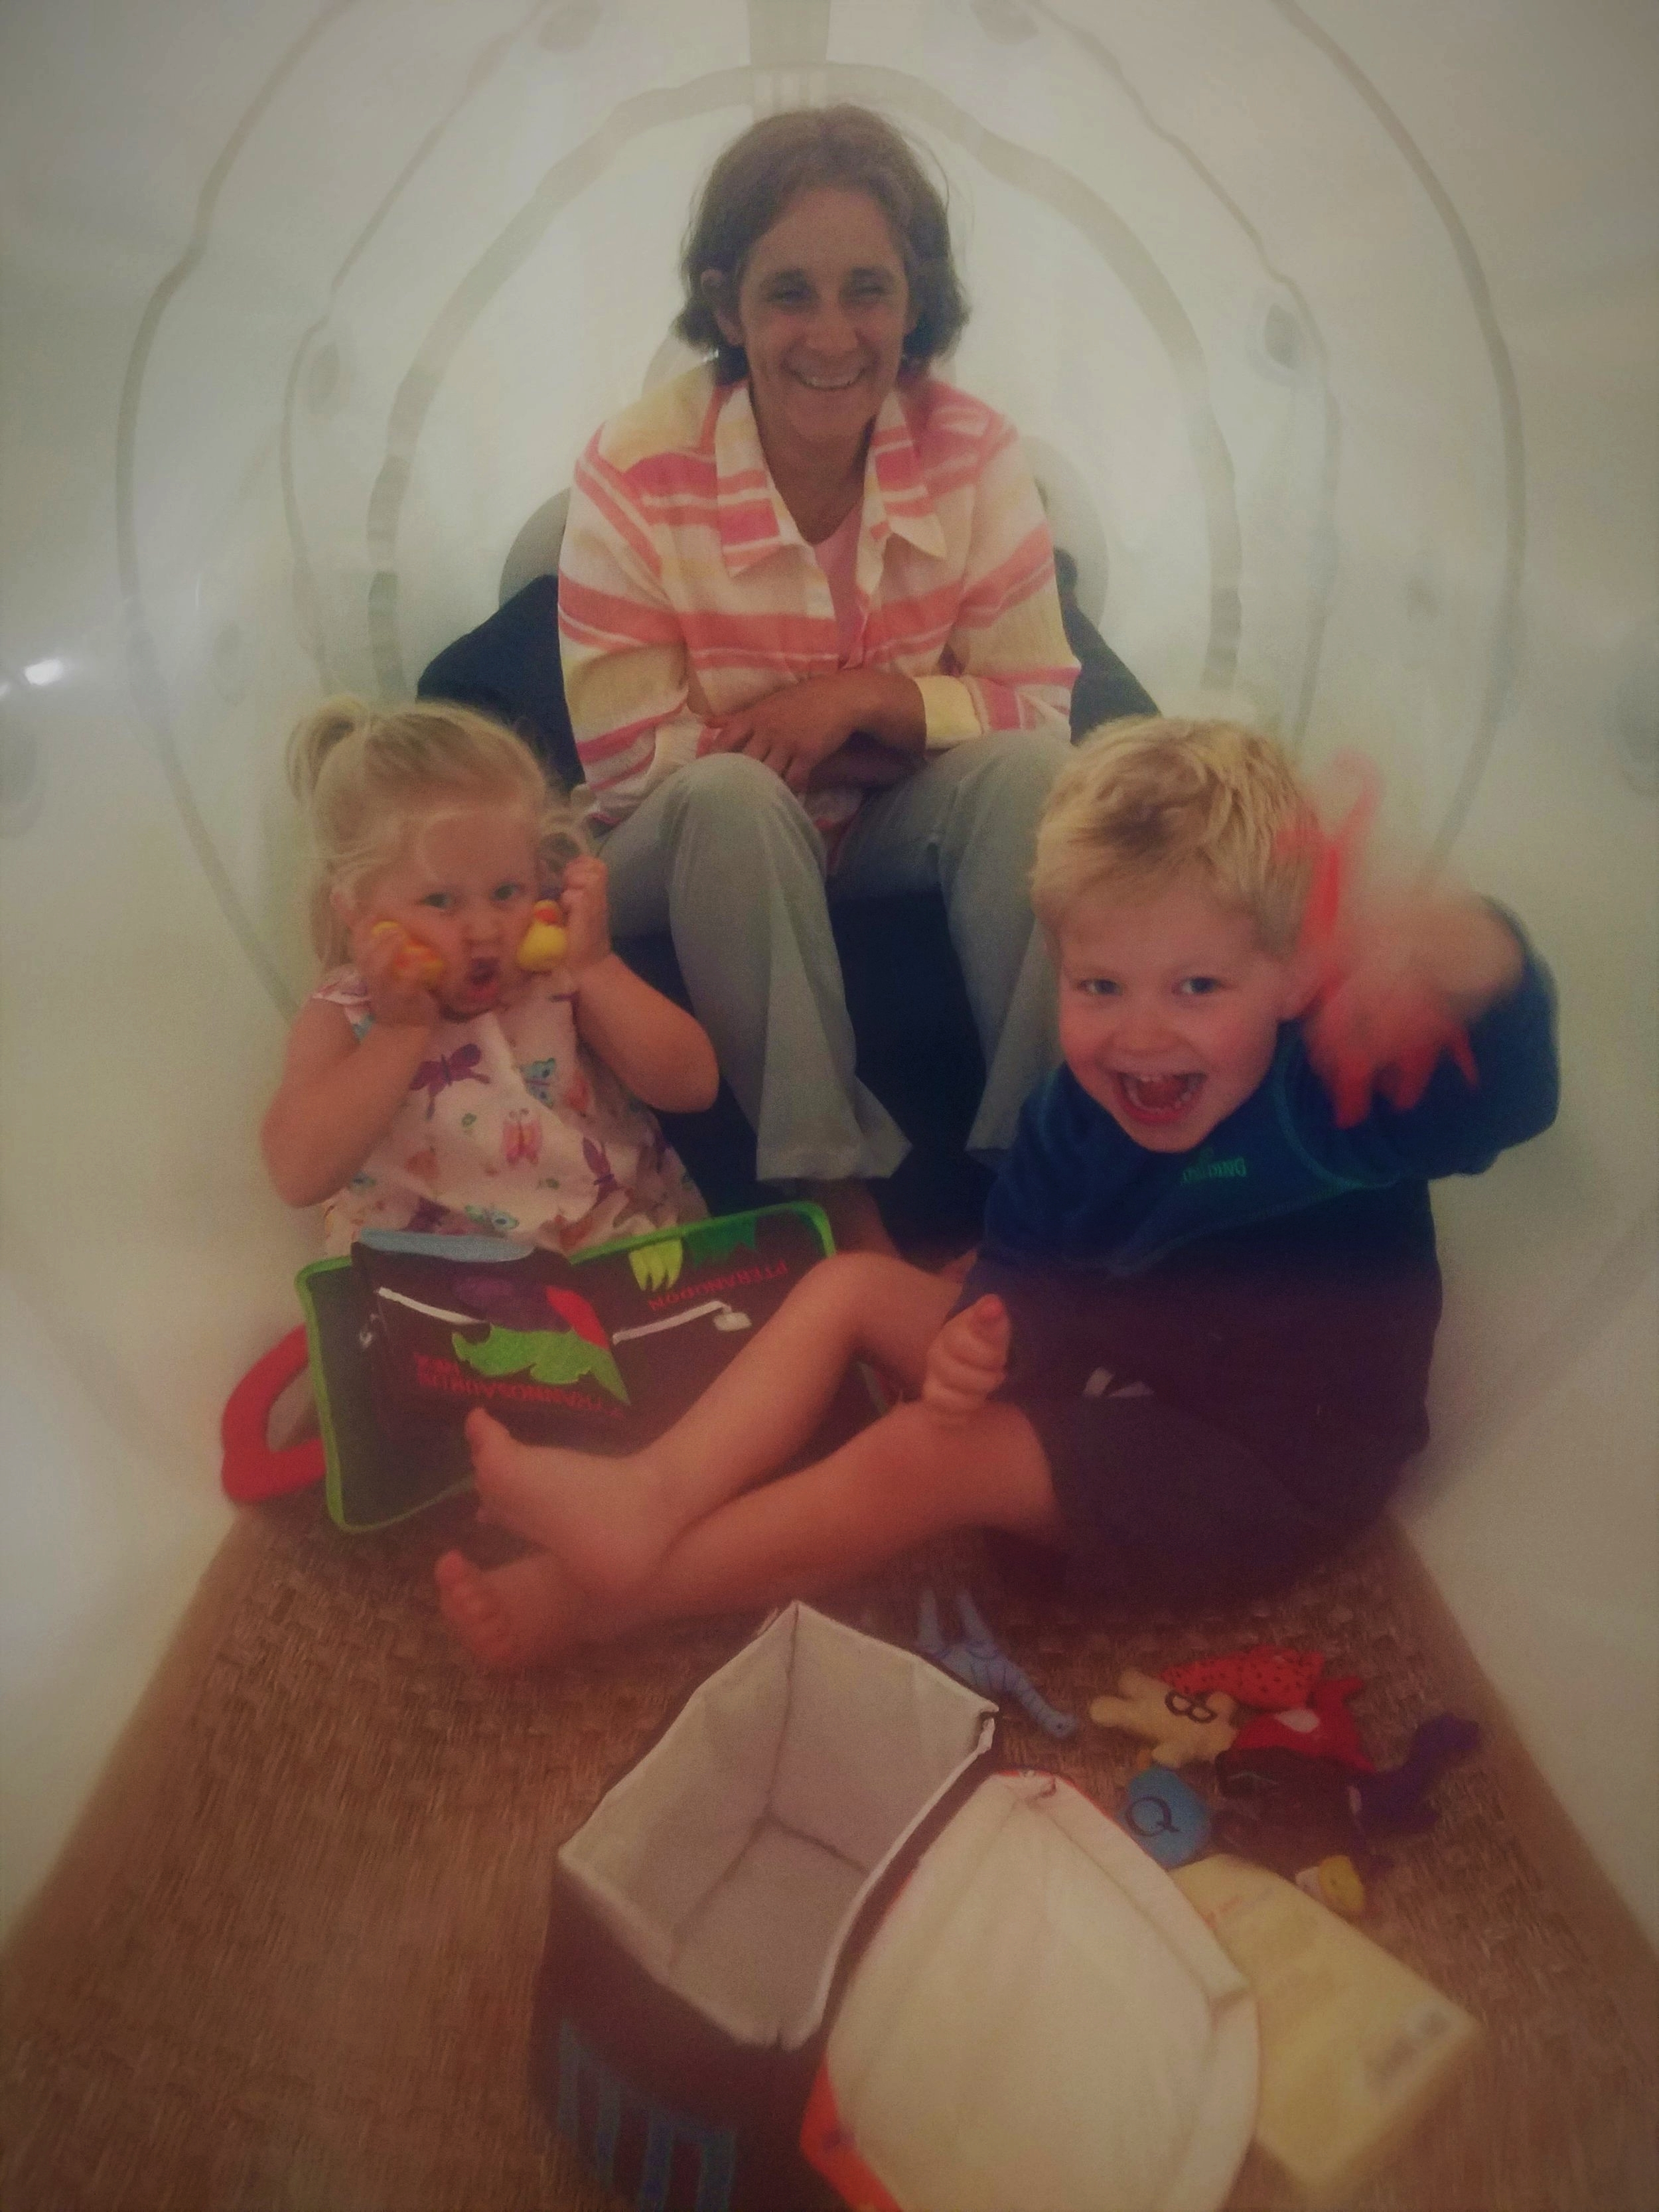 Large chamber fits multiple people for a very comfortable and fun treatment.  The twins loves it! -